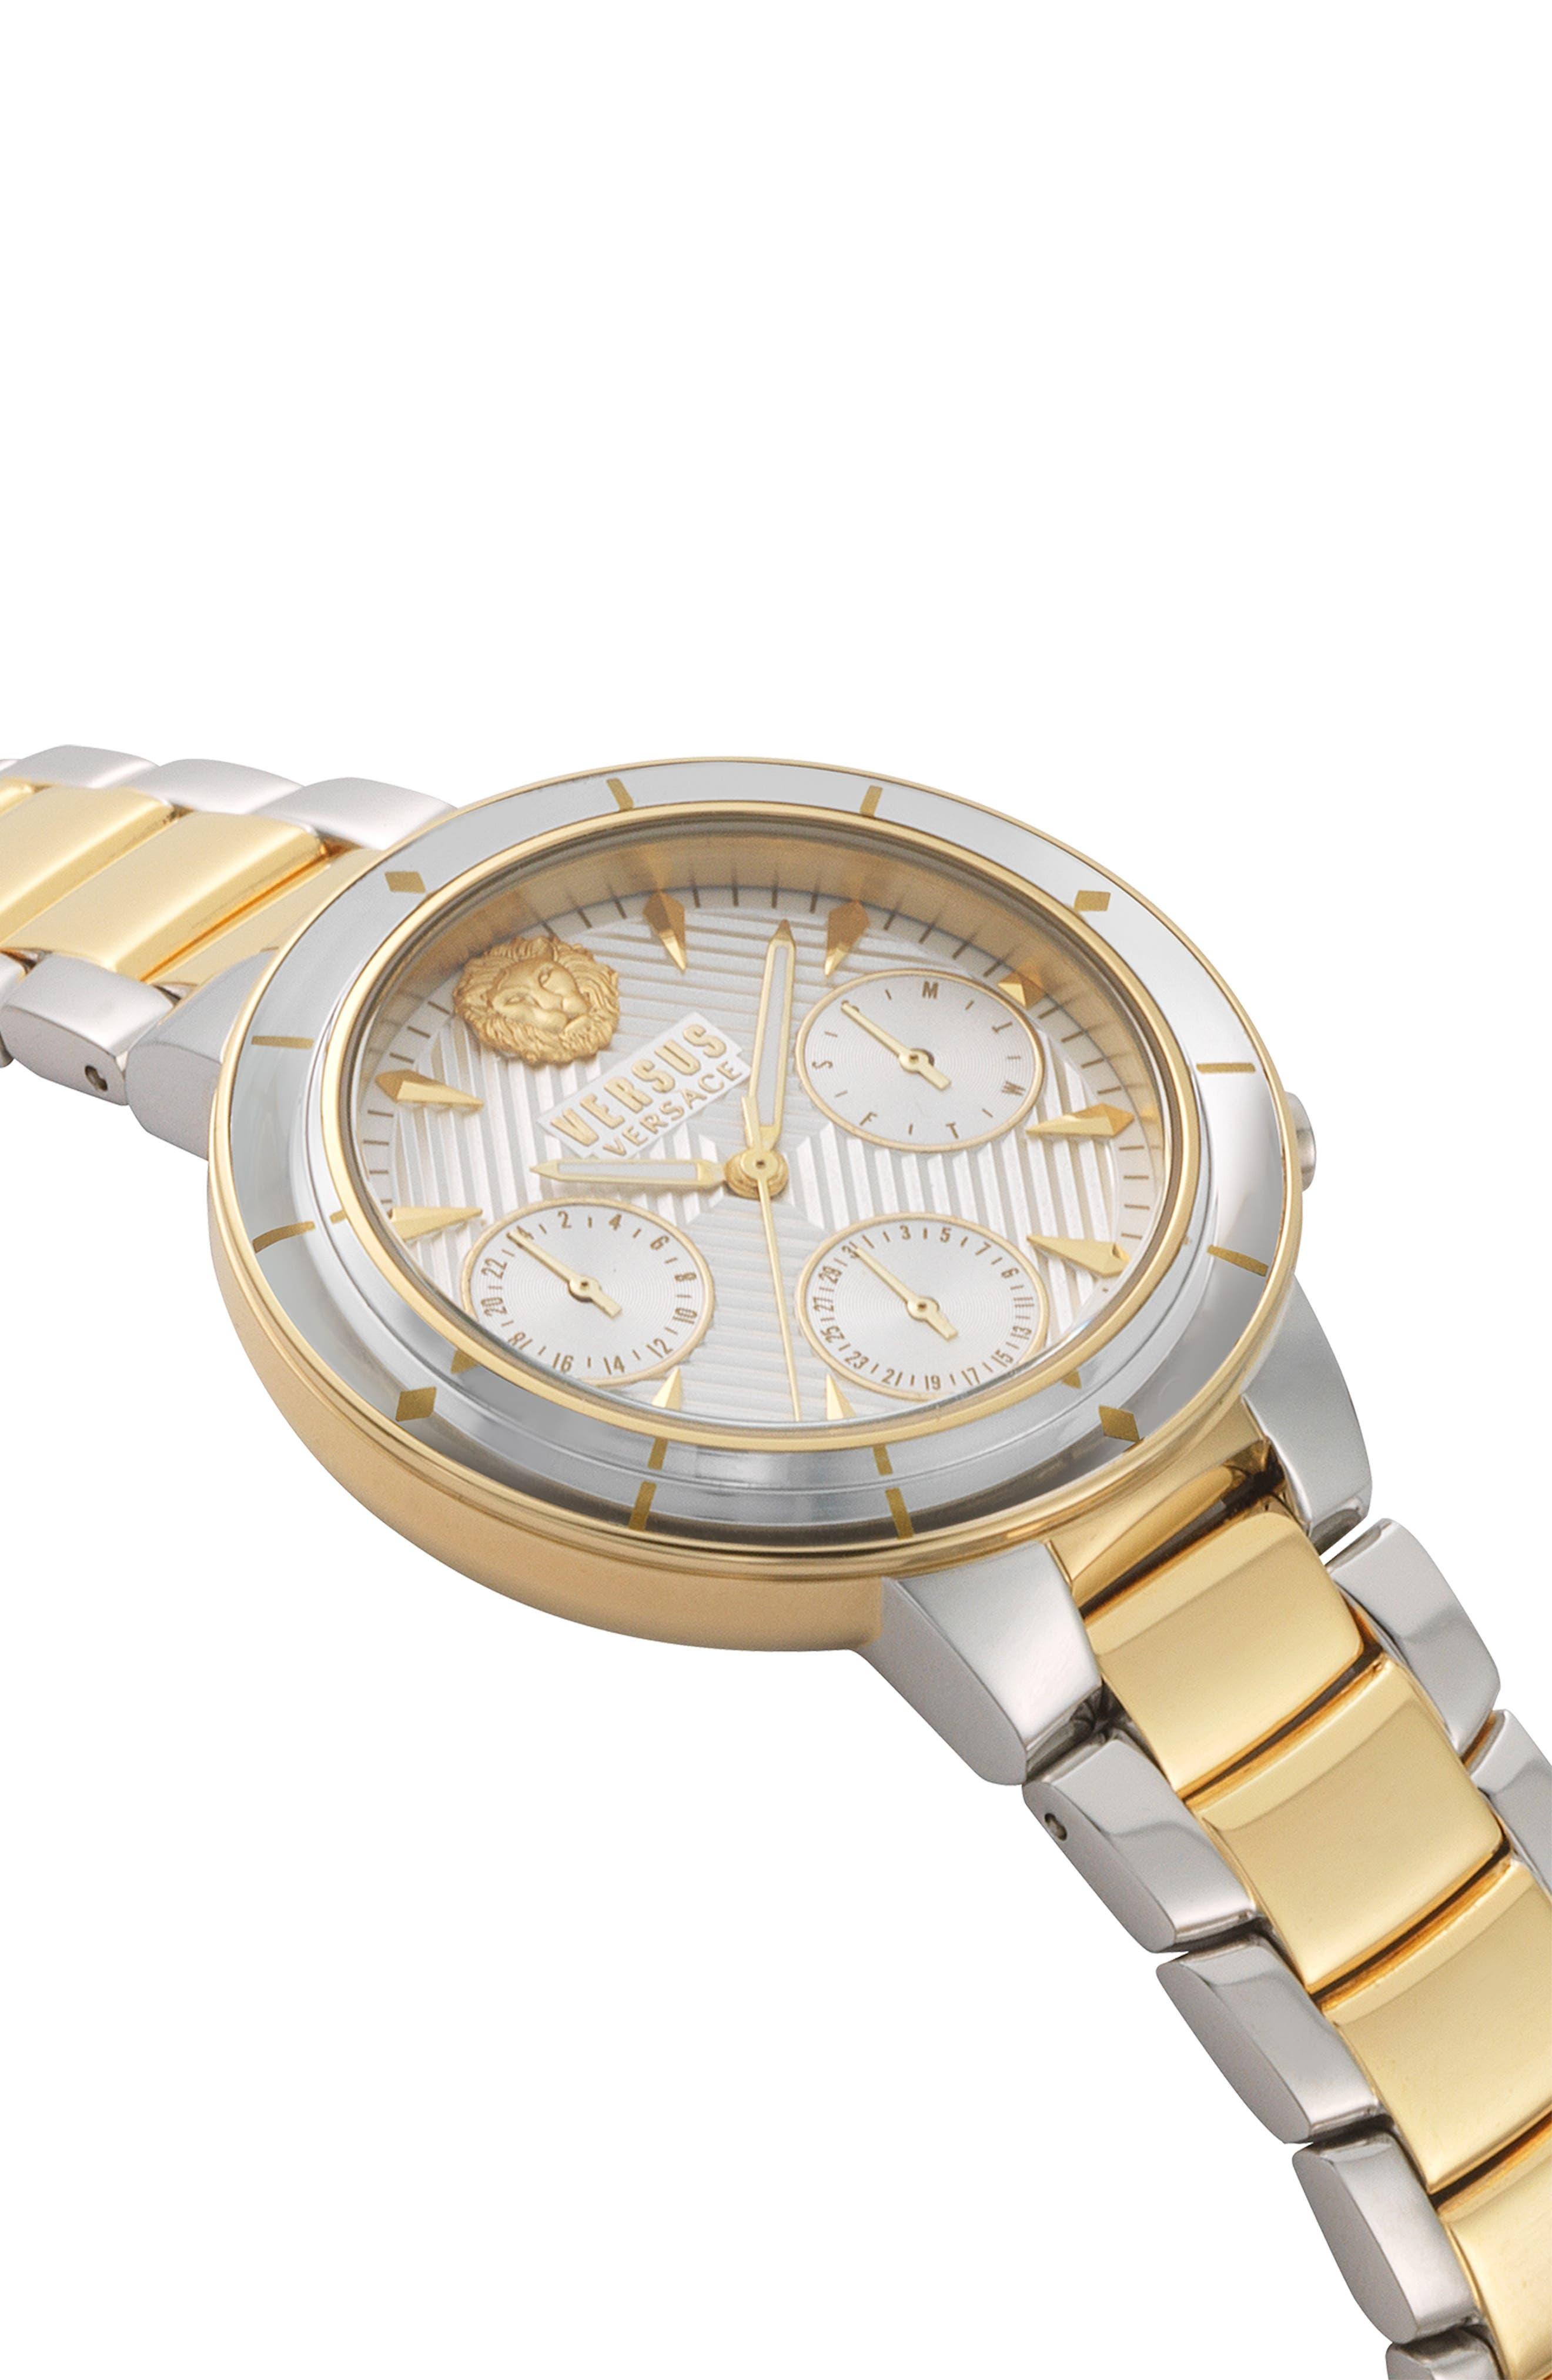 VERSUS VERSACE, Harbour Heights Chronograph Bracelet Watch, 38mm, Alternate thumbnail 3, color, SILVER/ GOLD